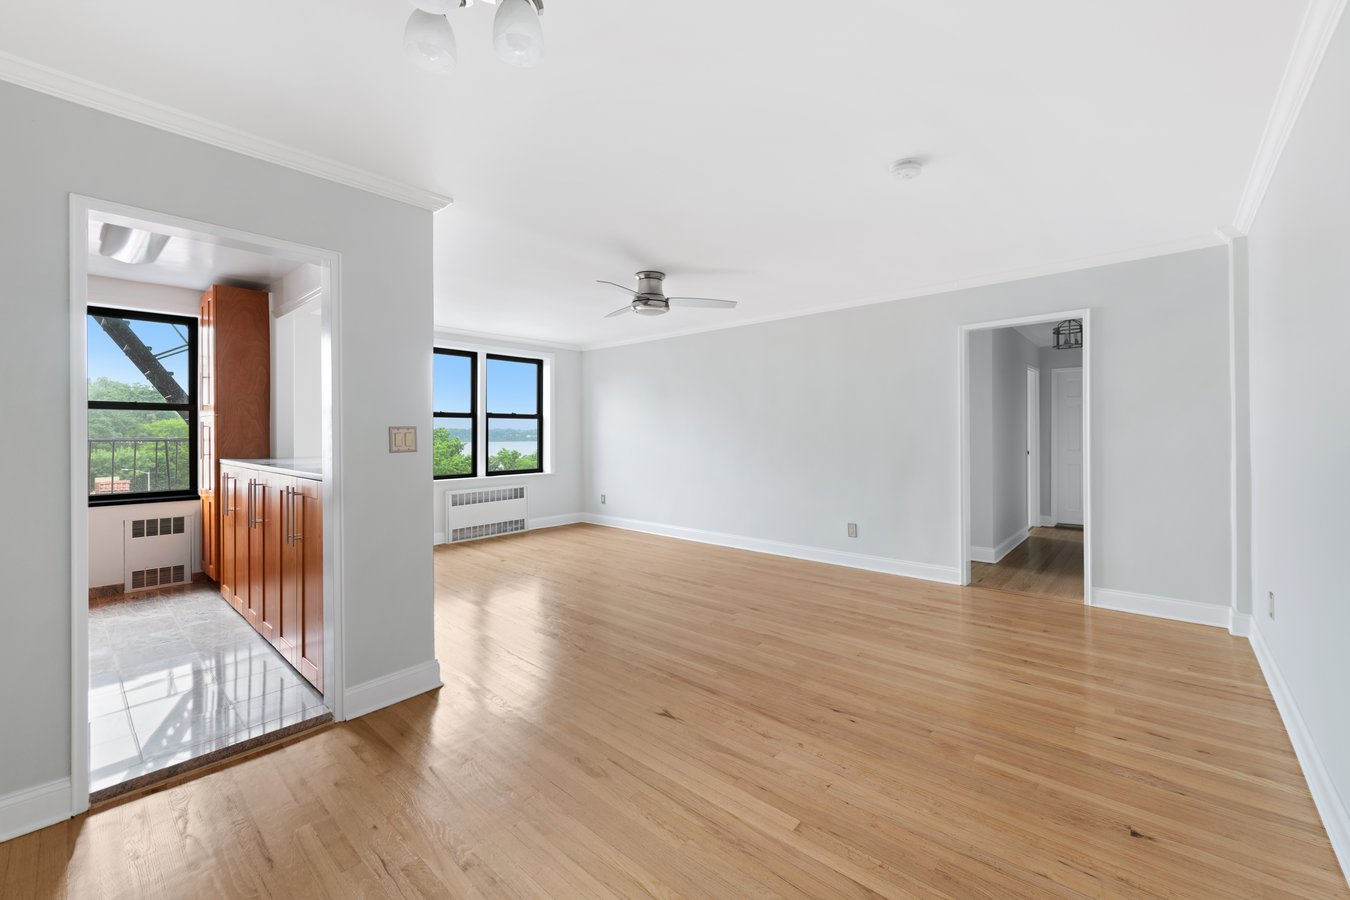 Apartment for sale at 8901 Narrows Avenue, Apt 20-5C